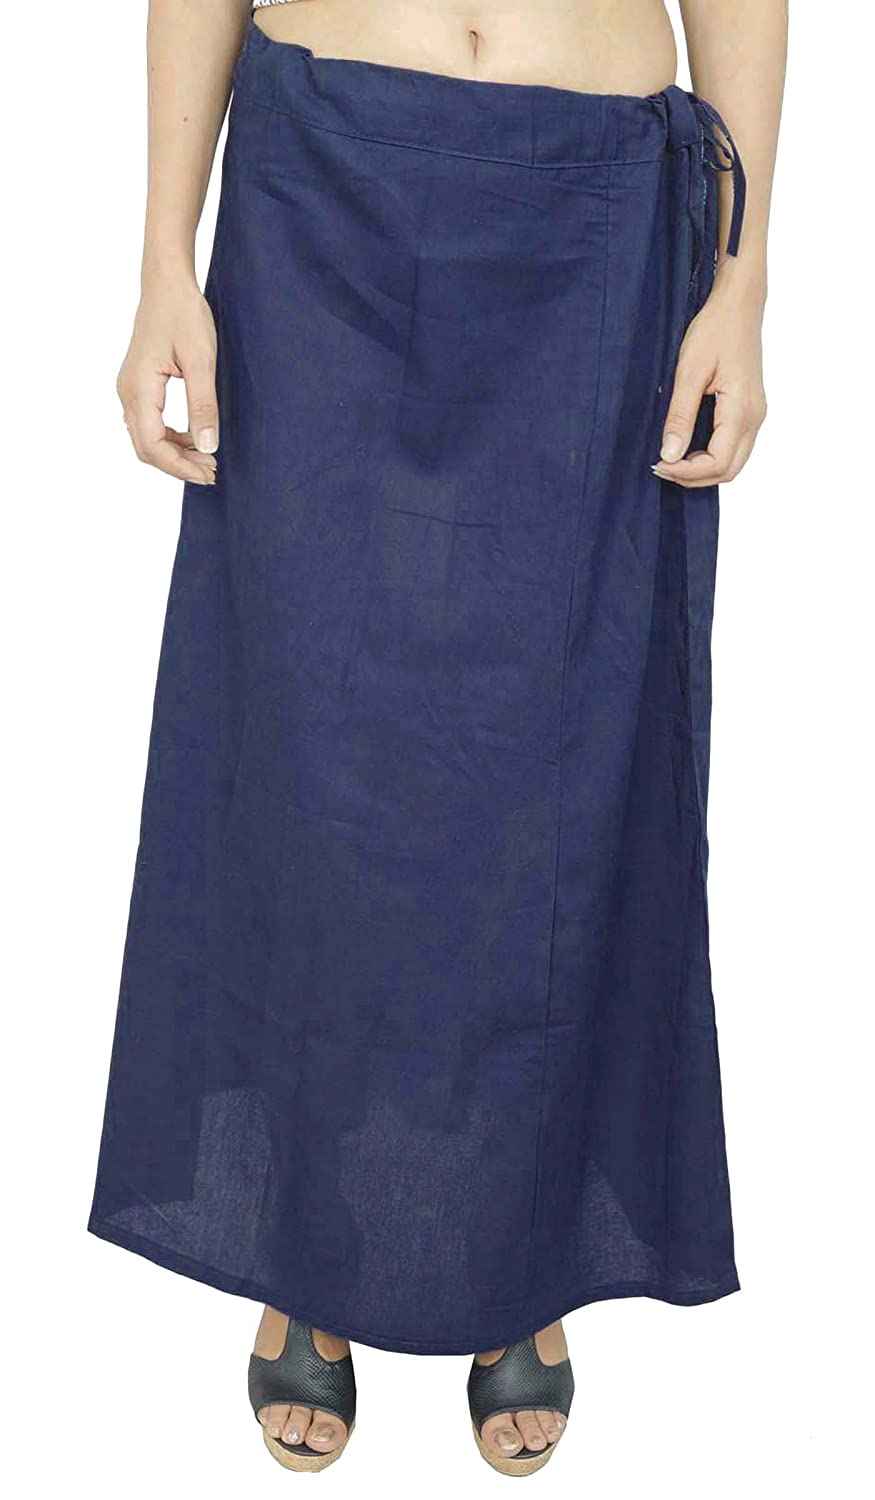 Bollywood Solid Petticoat Underskirt Indian Cotton Lining For Sari Ibaexports